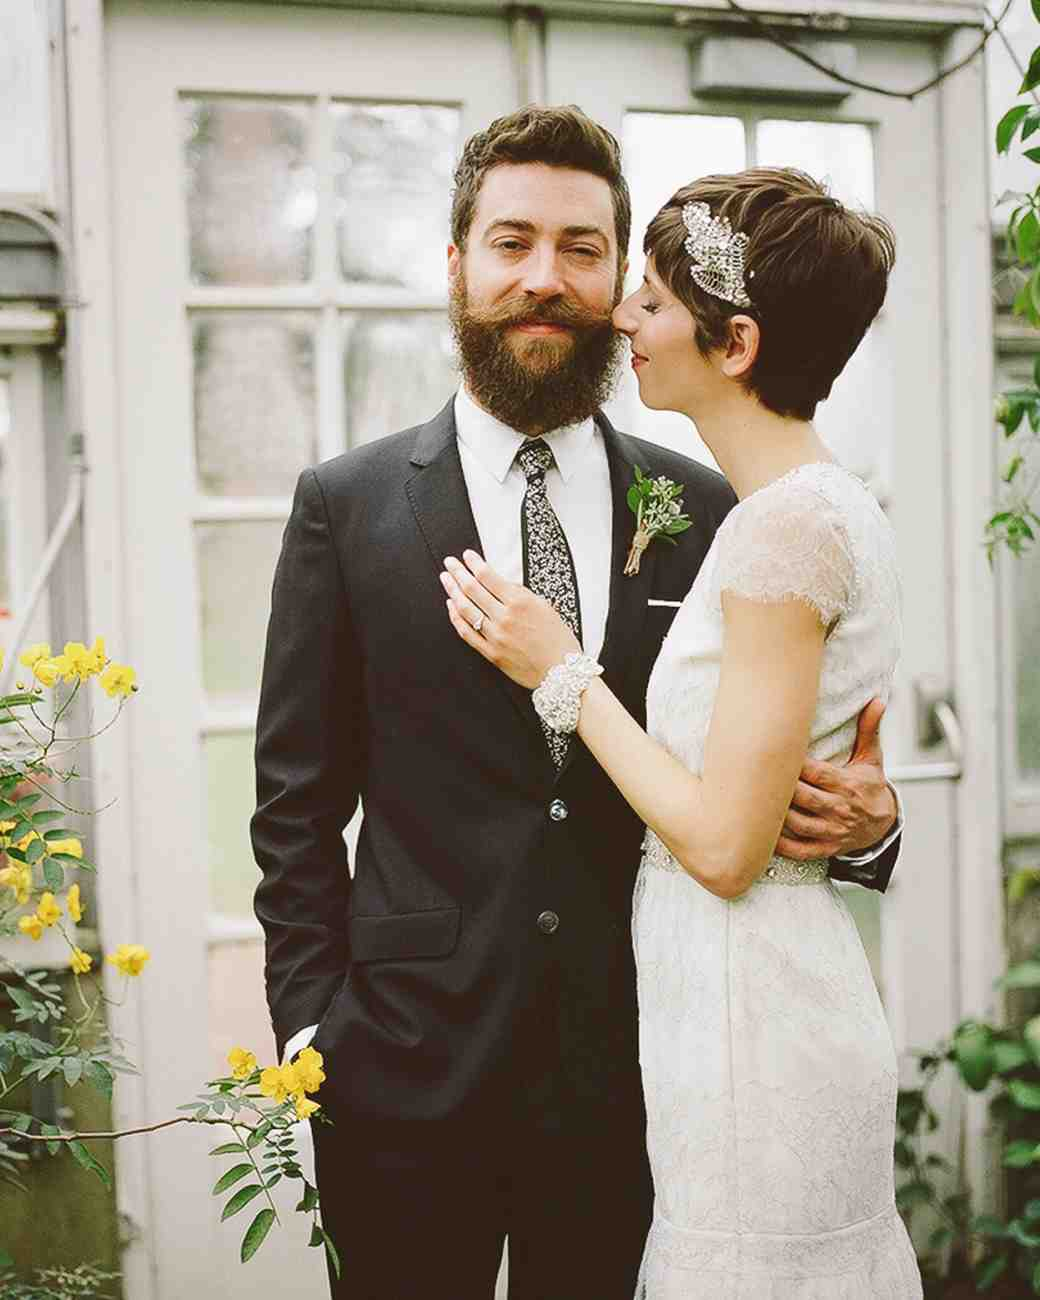 Find The Best Beard Styles For A Perfect Wedding In 2018